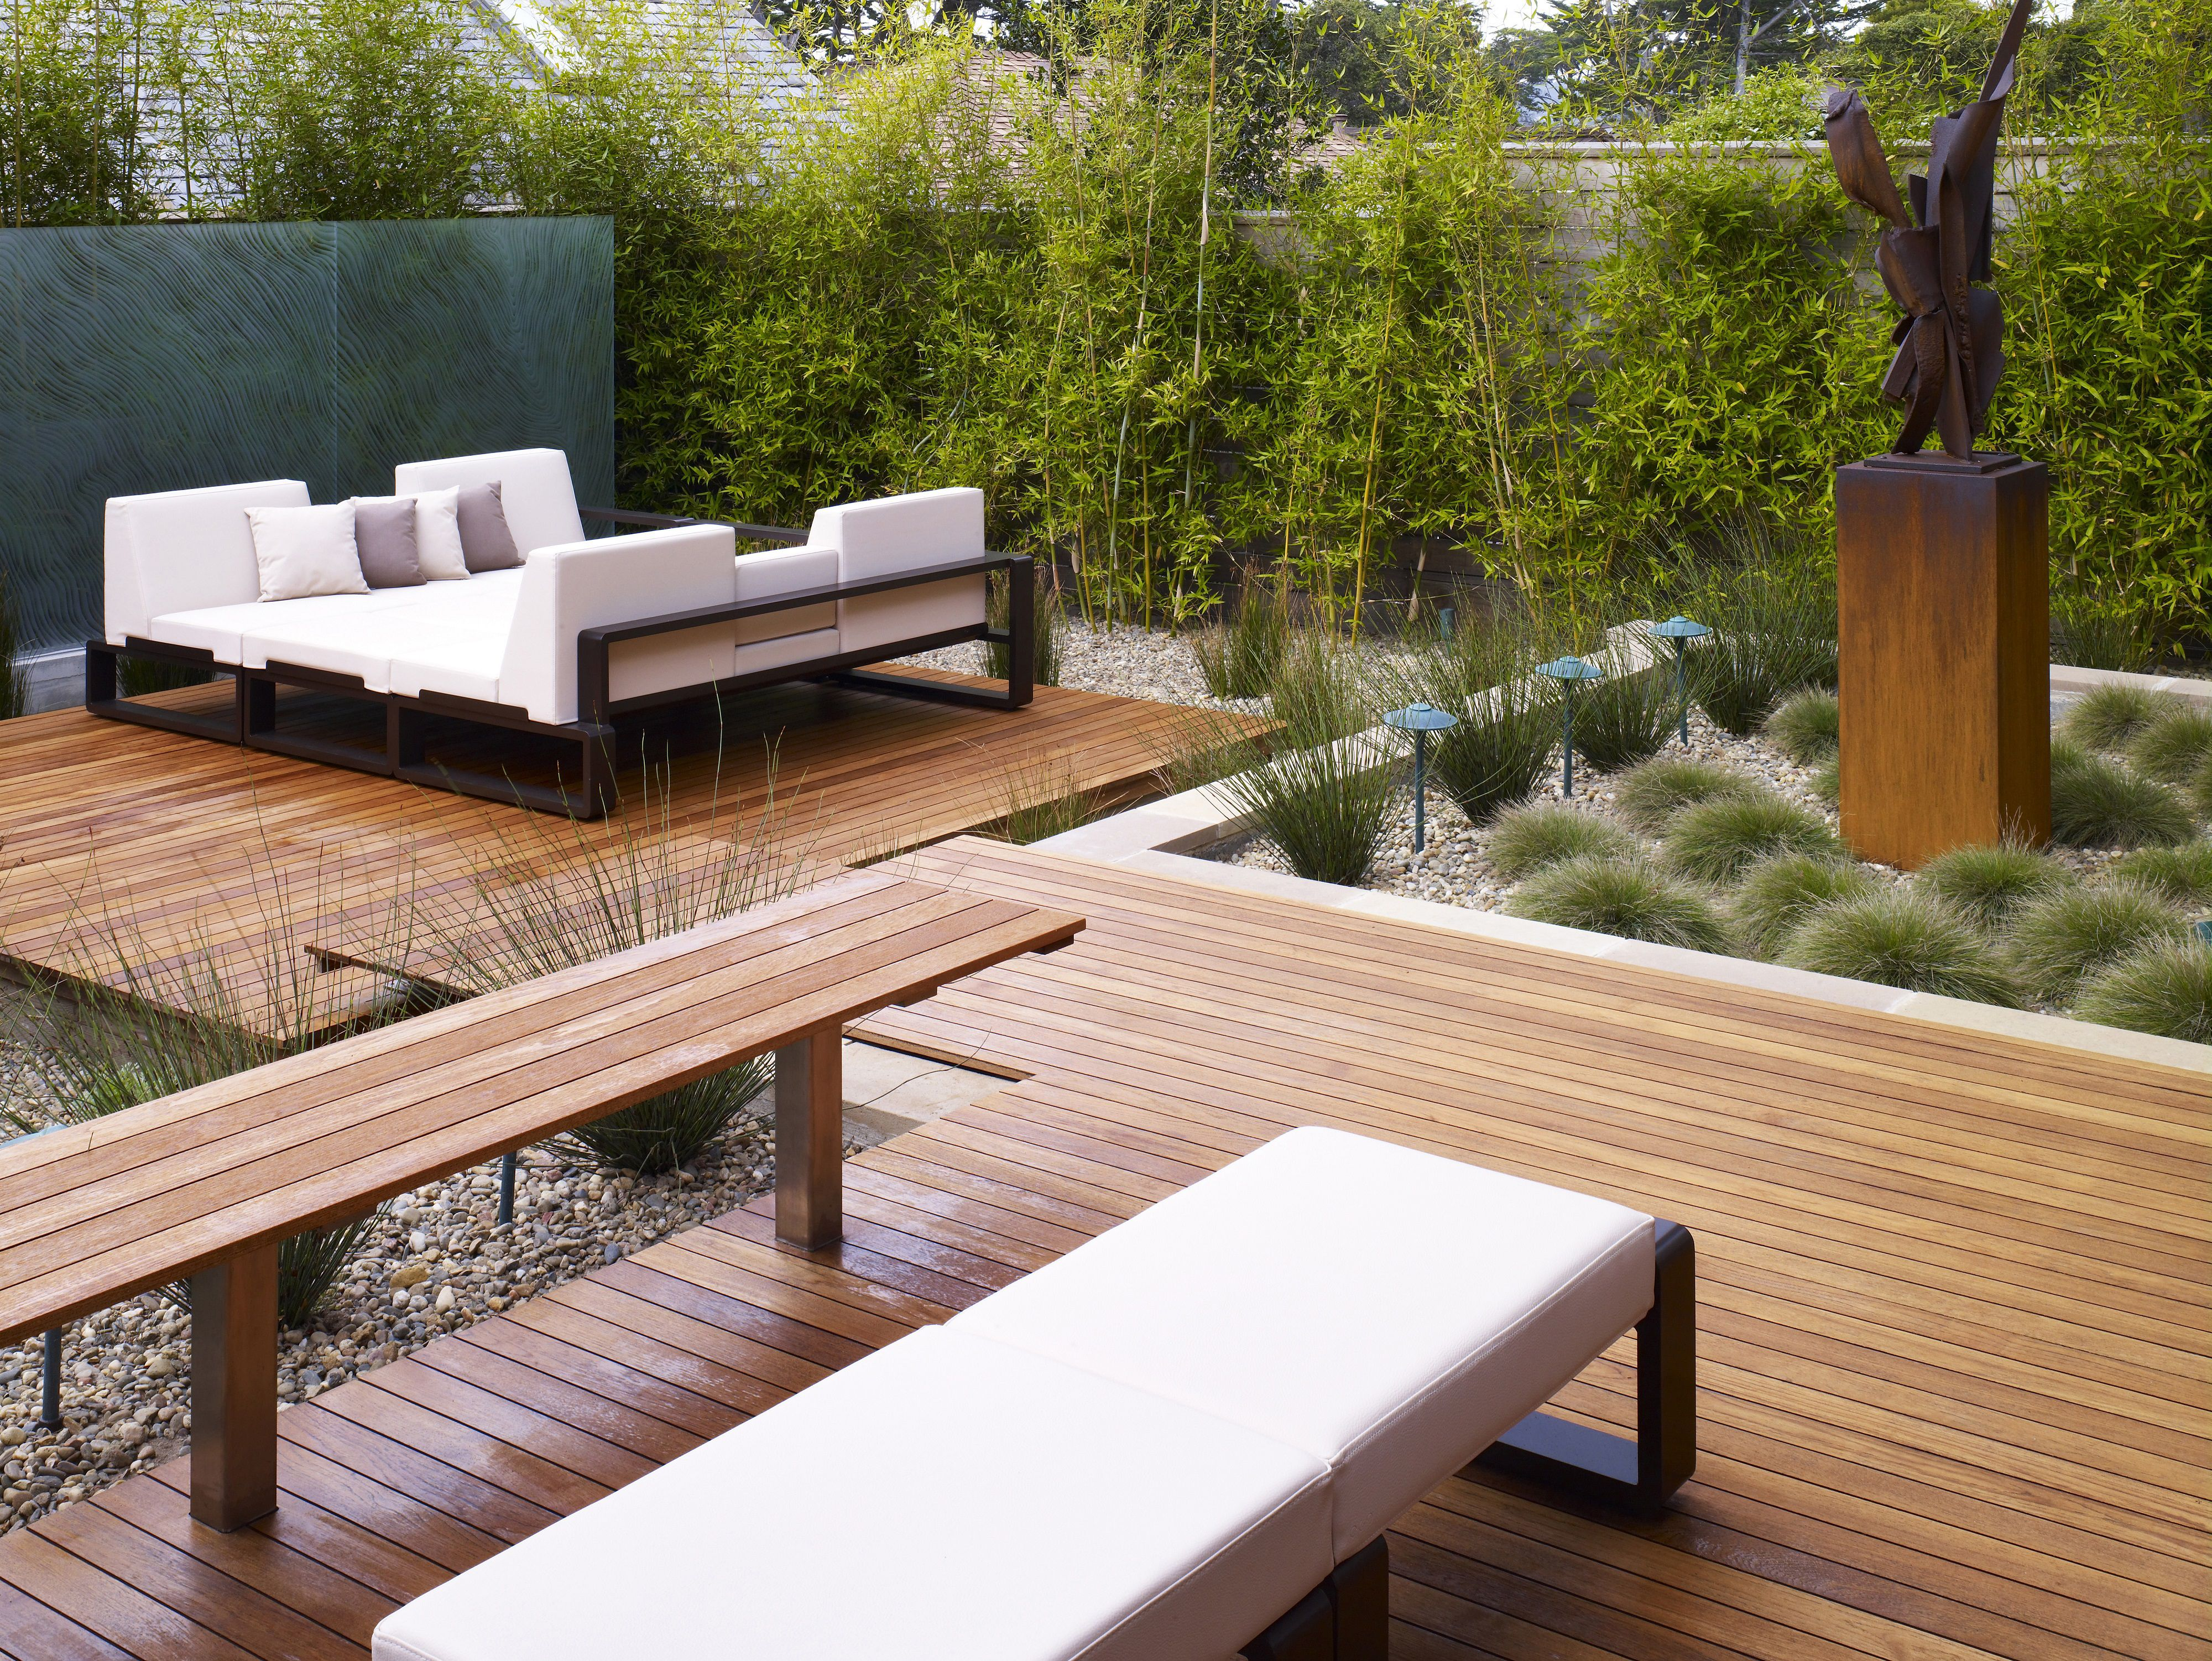 Great Outdoor Deck Design Ideas and Inspiration on Cool Backyard Patio Ideas id=79917